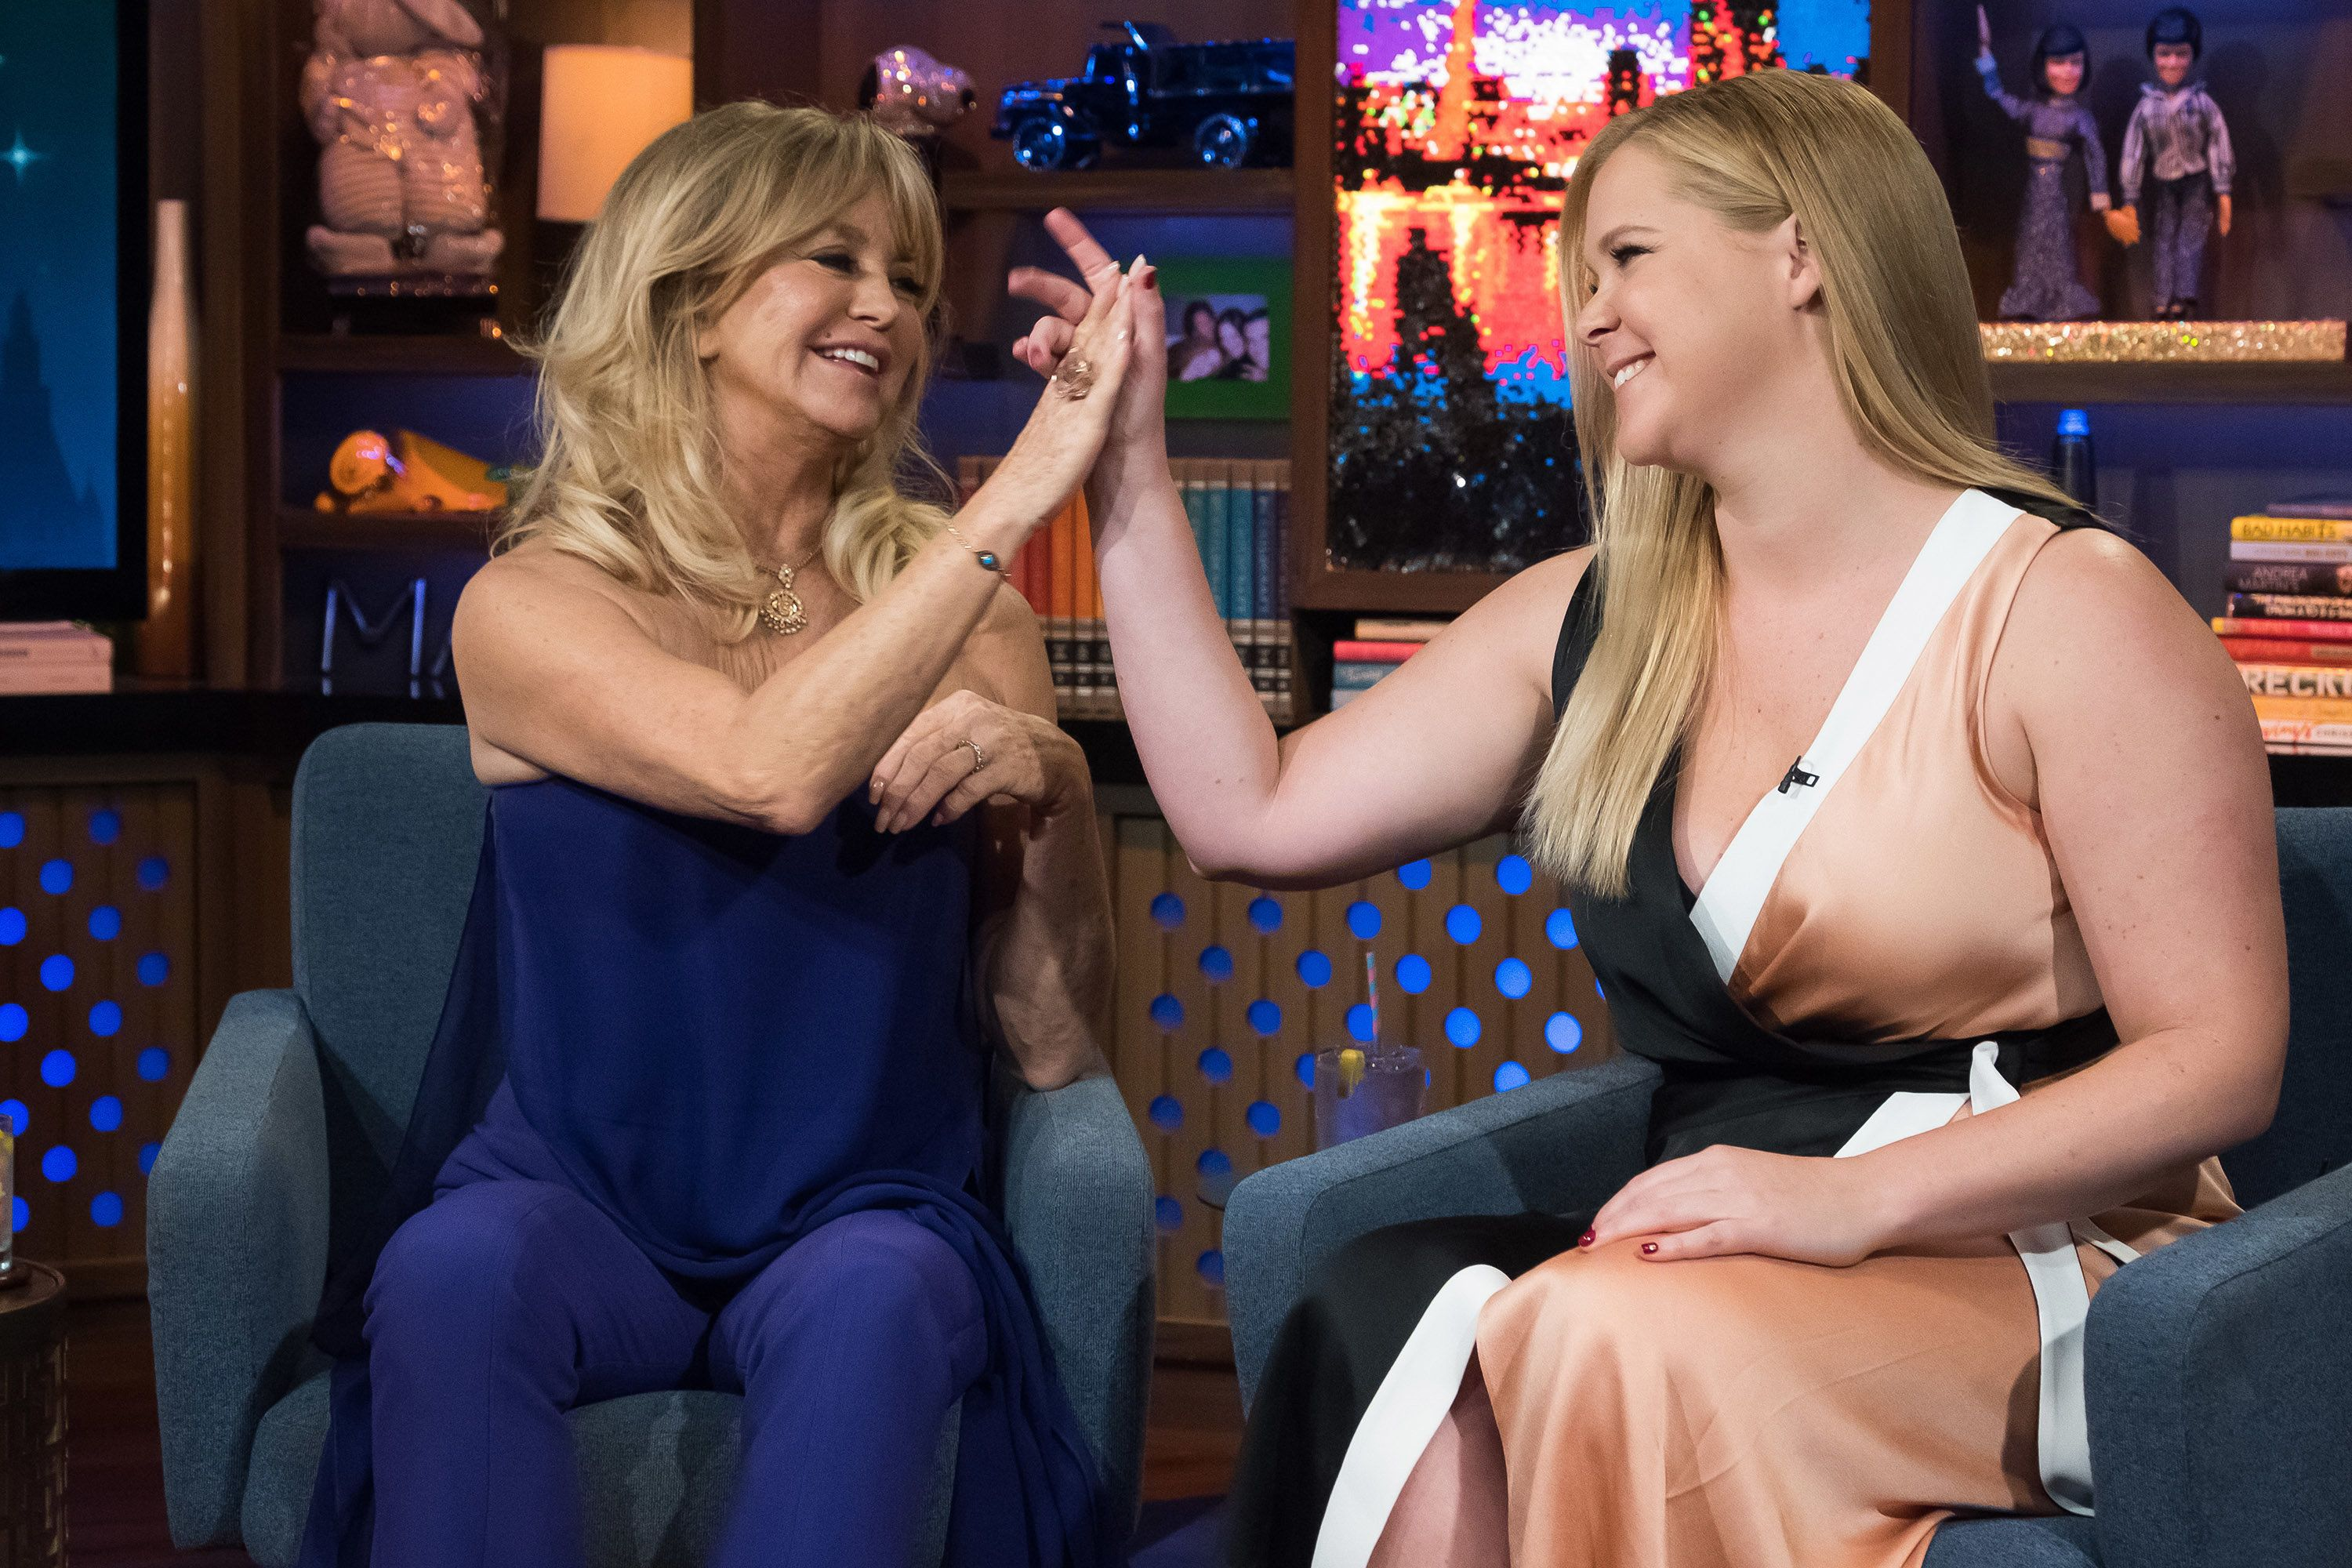 WATCH WHAT HAPPENS LIVE WITH ANDY COHEN -- Pictured (l-r): Goldie Hawn and Amy Schumer -- (Photo by: Charles Sykes/Bravo/NBCU Photo Bank via Getty Images)